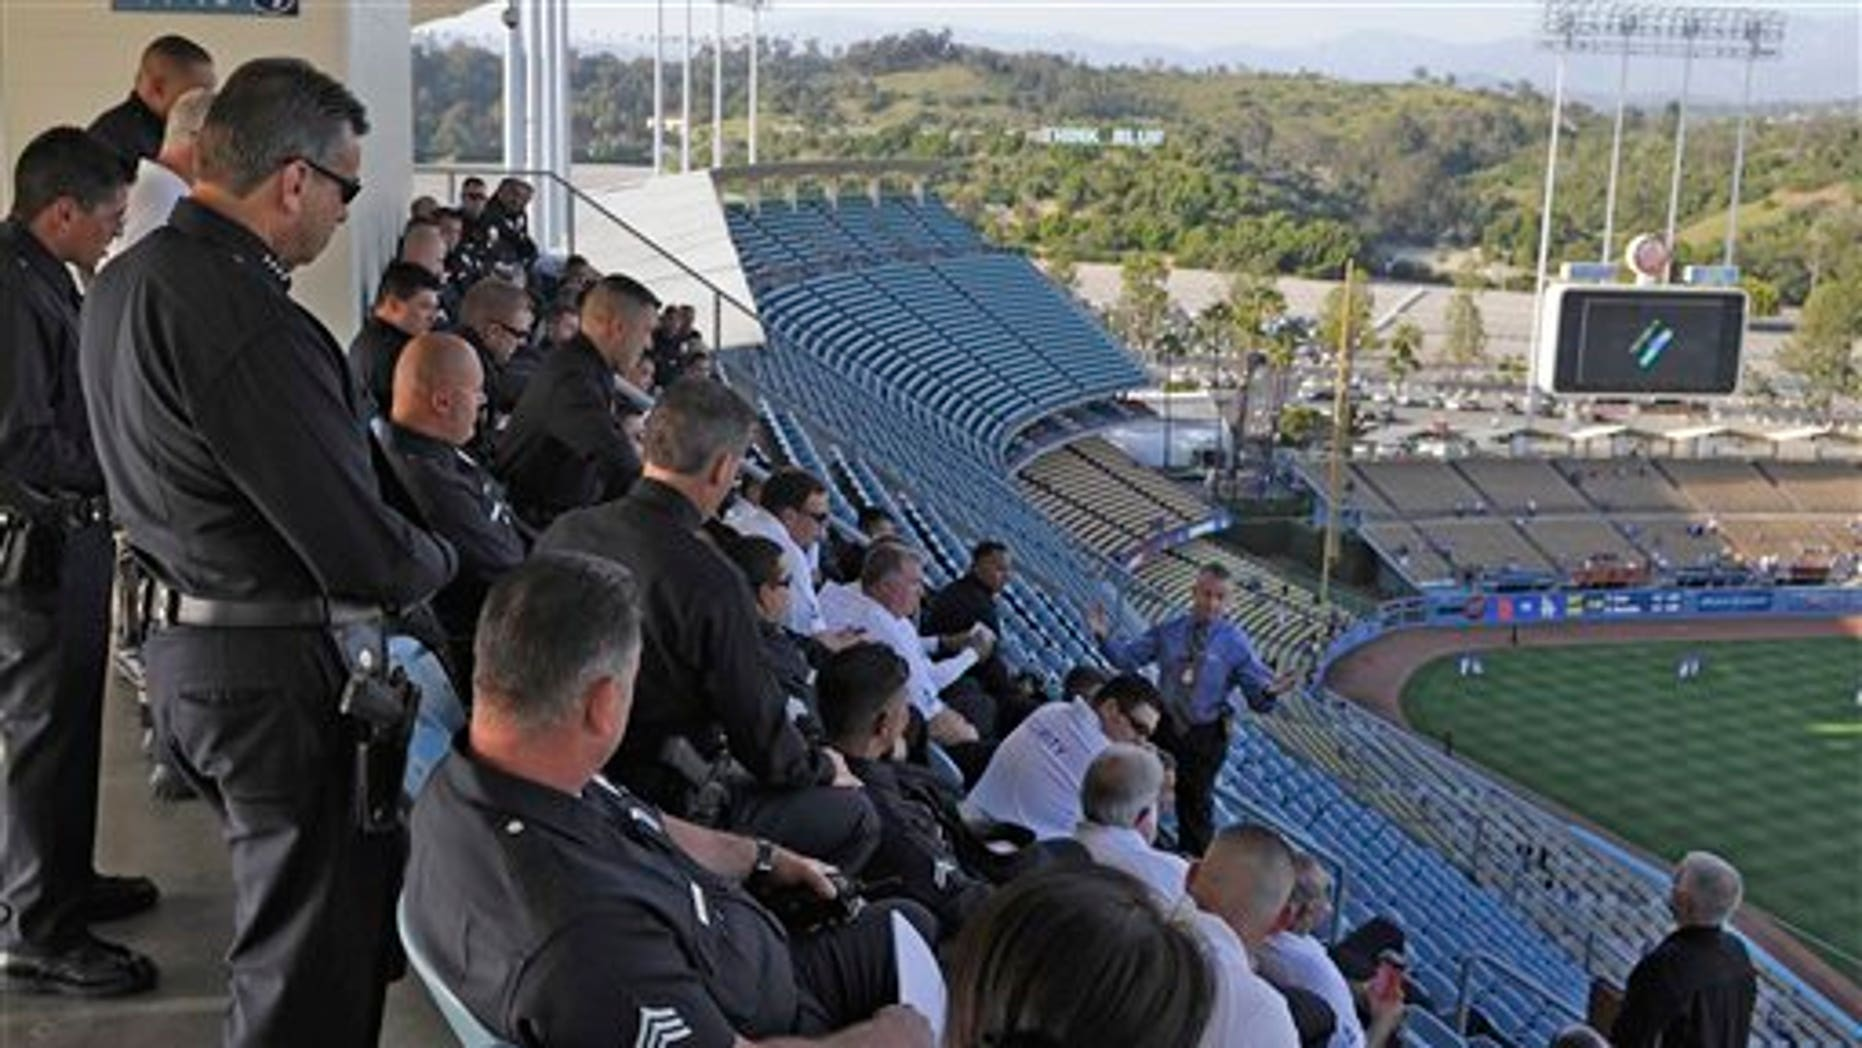 April 14: Los Angeles Police Department chief Charlie Beck, left, listens in on a meeting with police officer and security at Dodger Stadium prior to the Dodgers' Major League Baseball game against the St. Louis Cardinals in Los Angeles. Bryan Stow, the father of two, was beaten in a parking lot outside Dodger Stadium after the teams' March 31 season opener and remains hospitalized in Los Angeles in a medically induced coma. (AP)